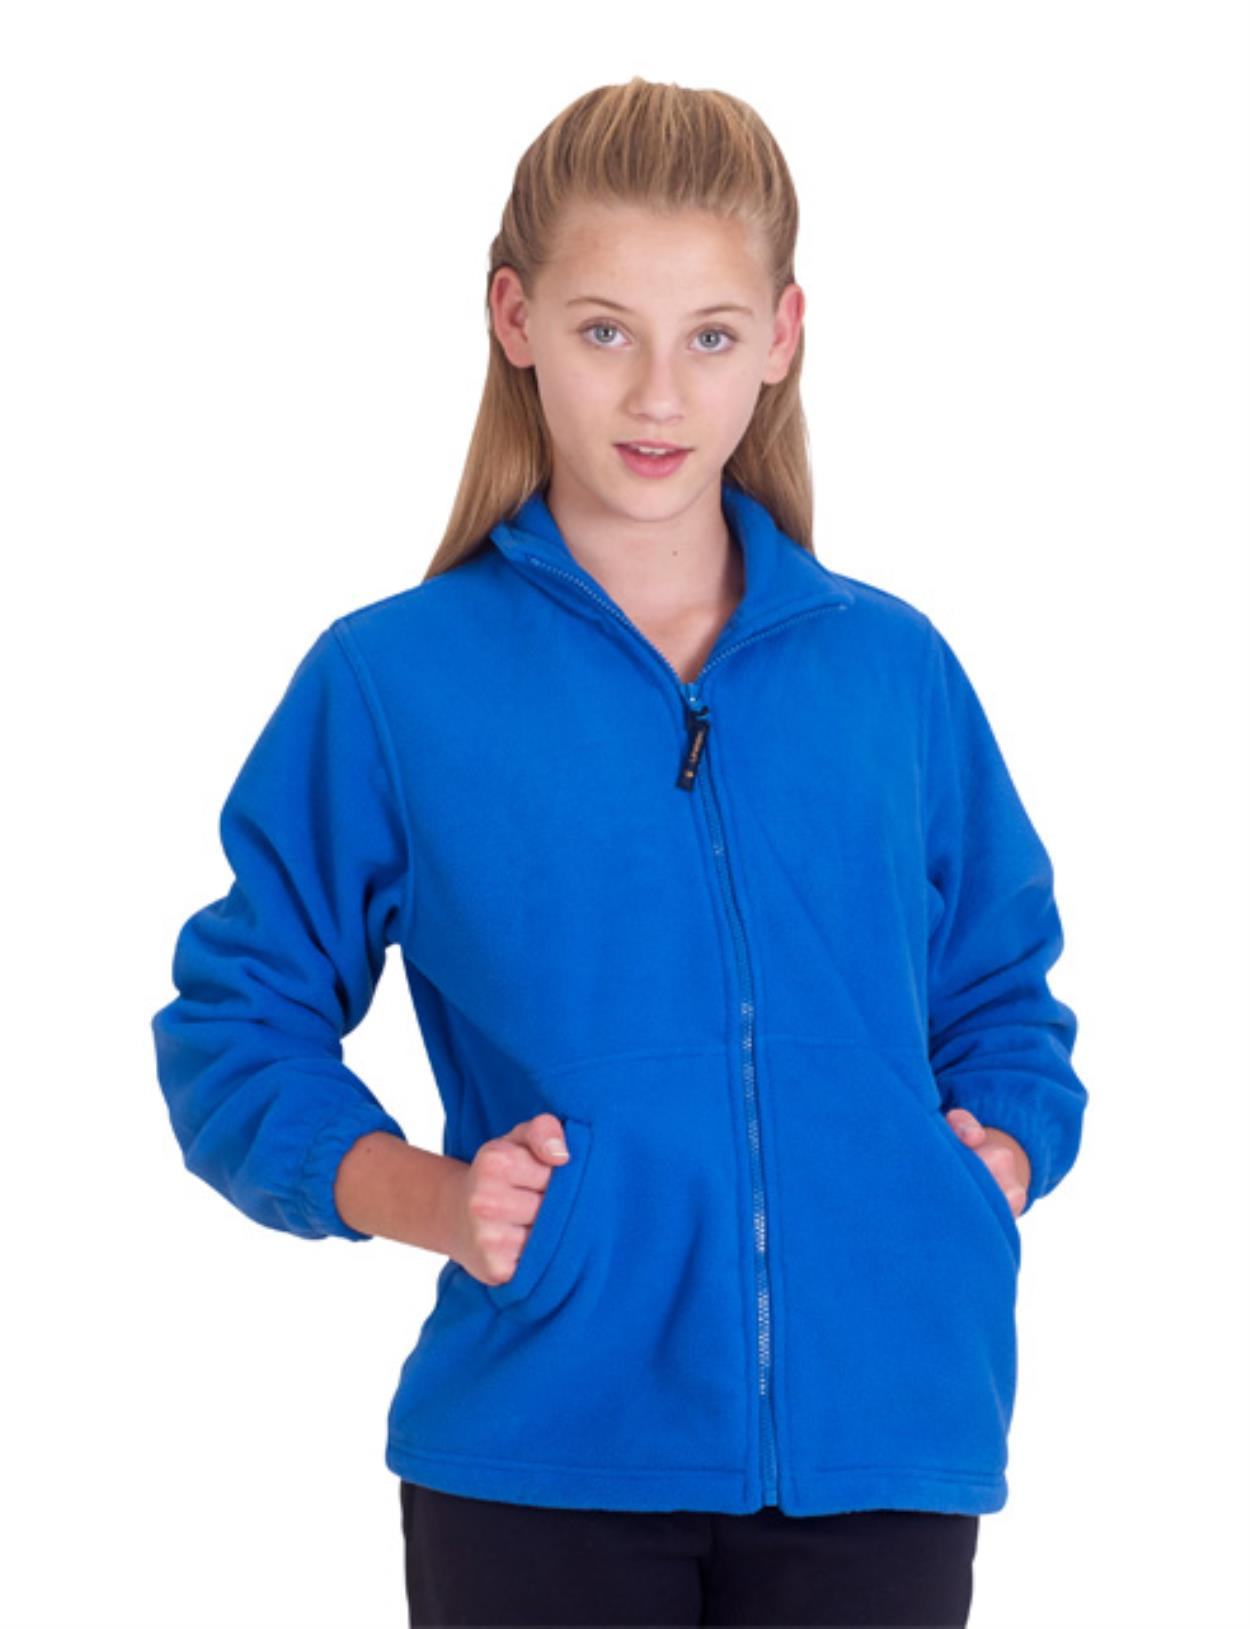 UC603 - Children's Full Zip Fleece